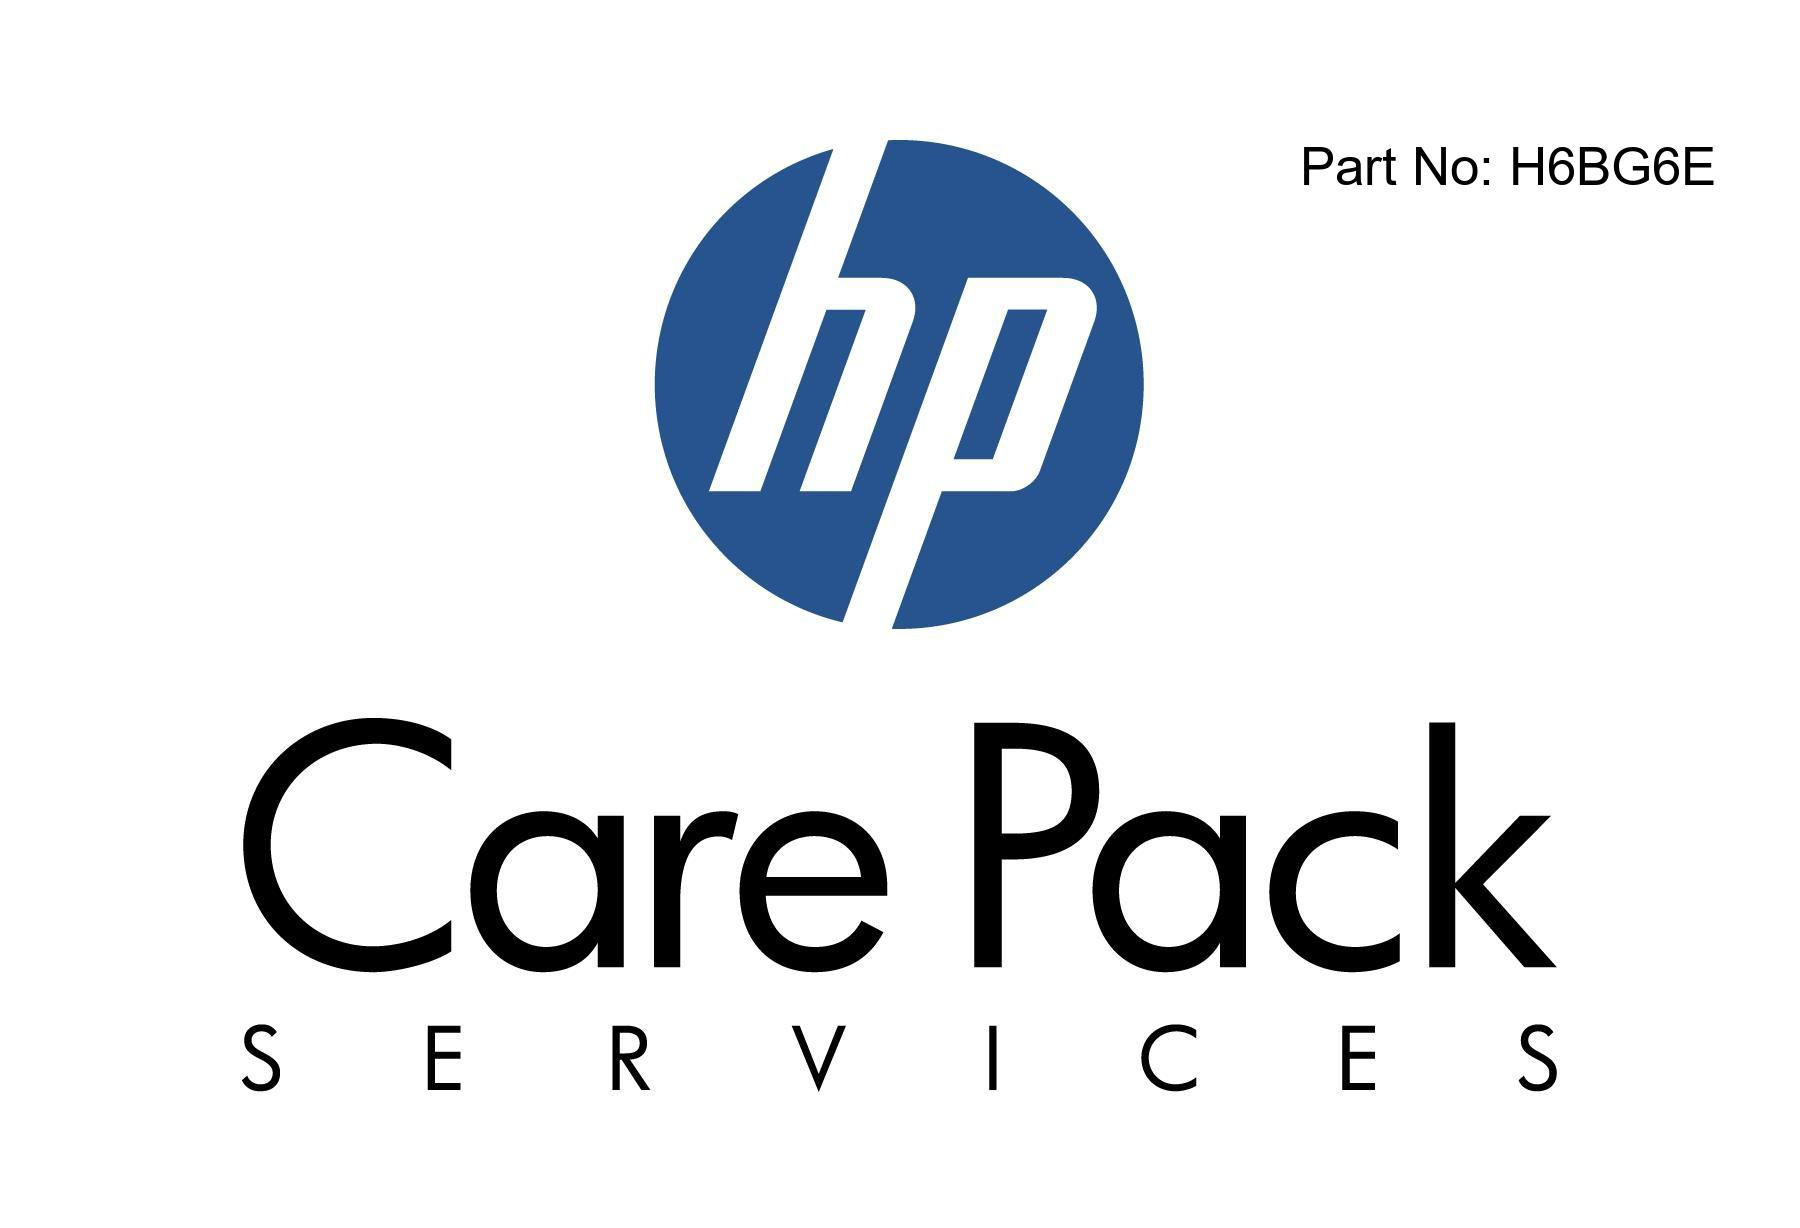 Proactive Care Call-To-Repair Service - Extended service agreement - parts and labor - 3 years - on-site - 24x7 - repair time: 6 hours